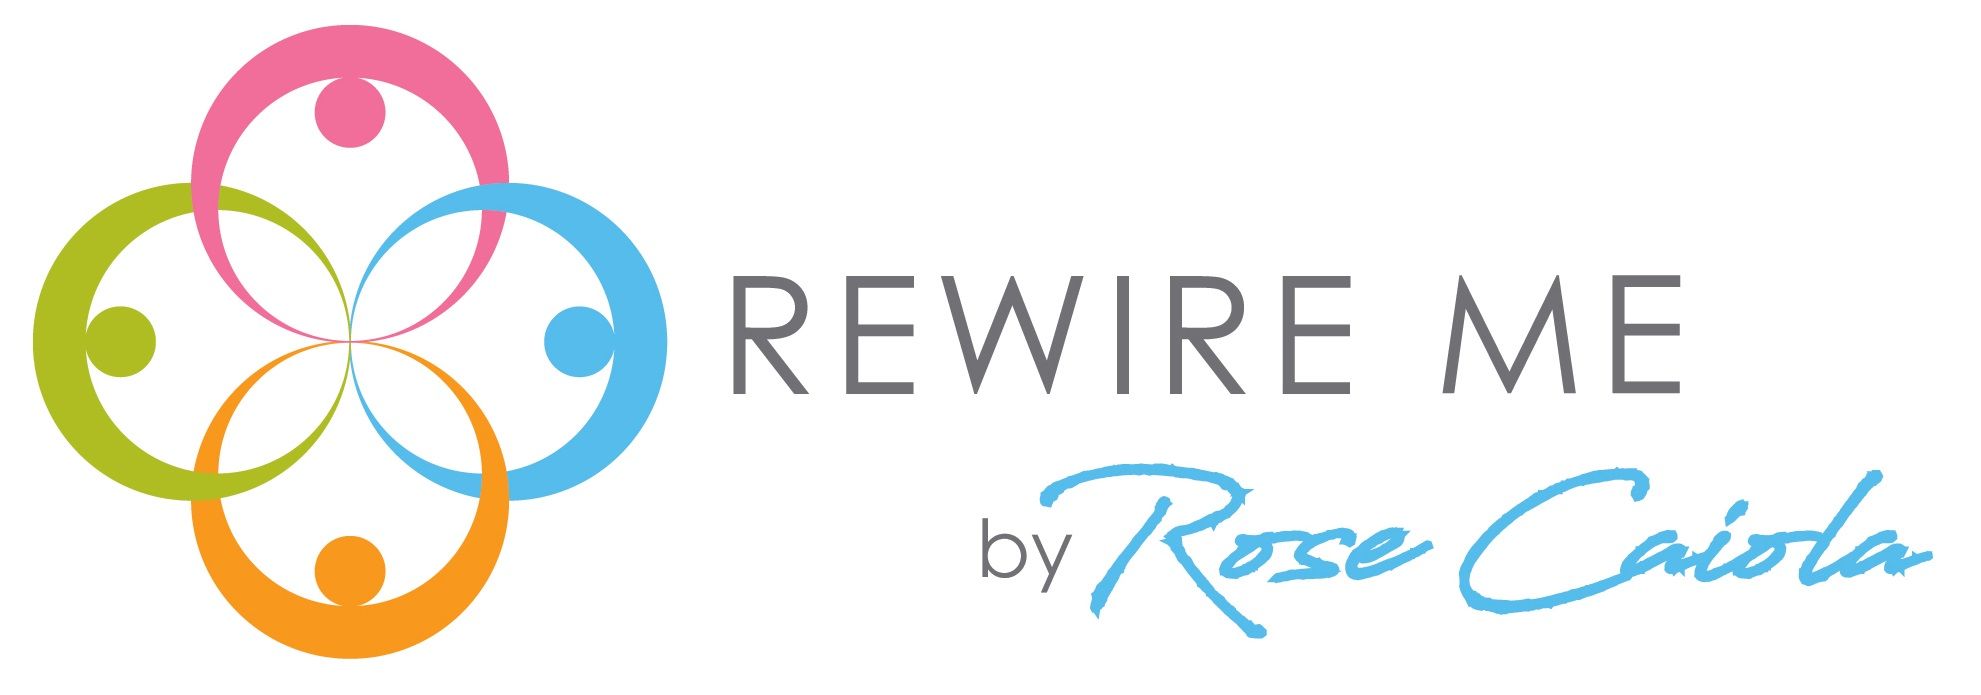 Rewire Me by Rose Caiola Logo